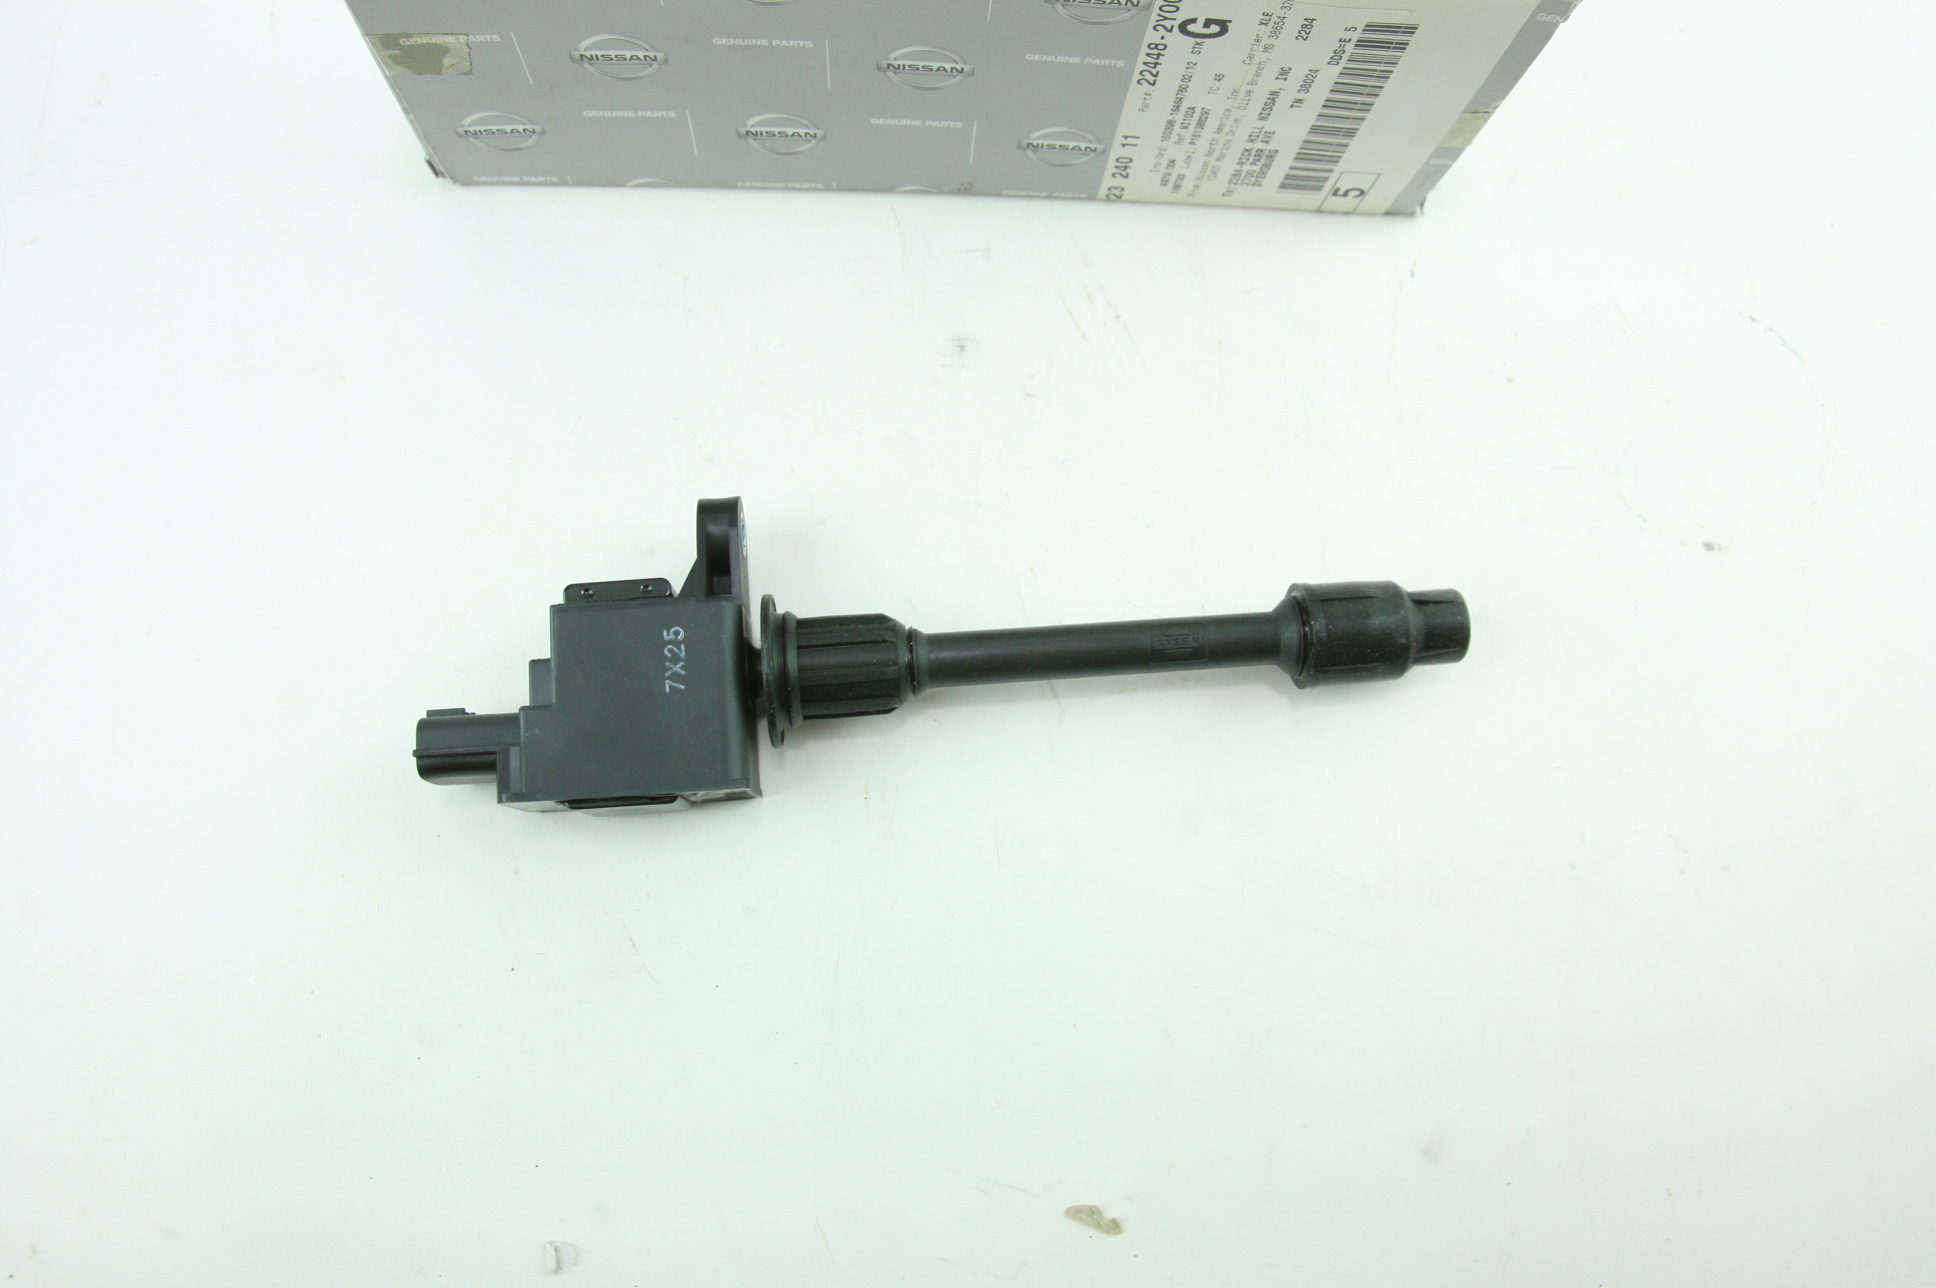 ** New Genuine OEM Nissan 224482Y000 Ignition Coil Fast Free Shipping - image 4